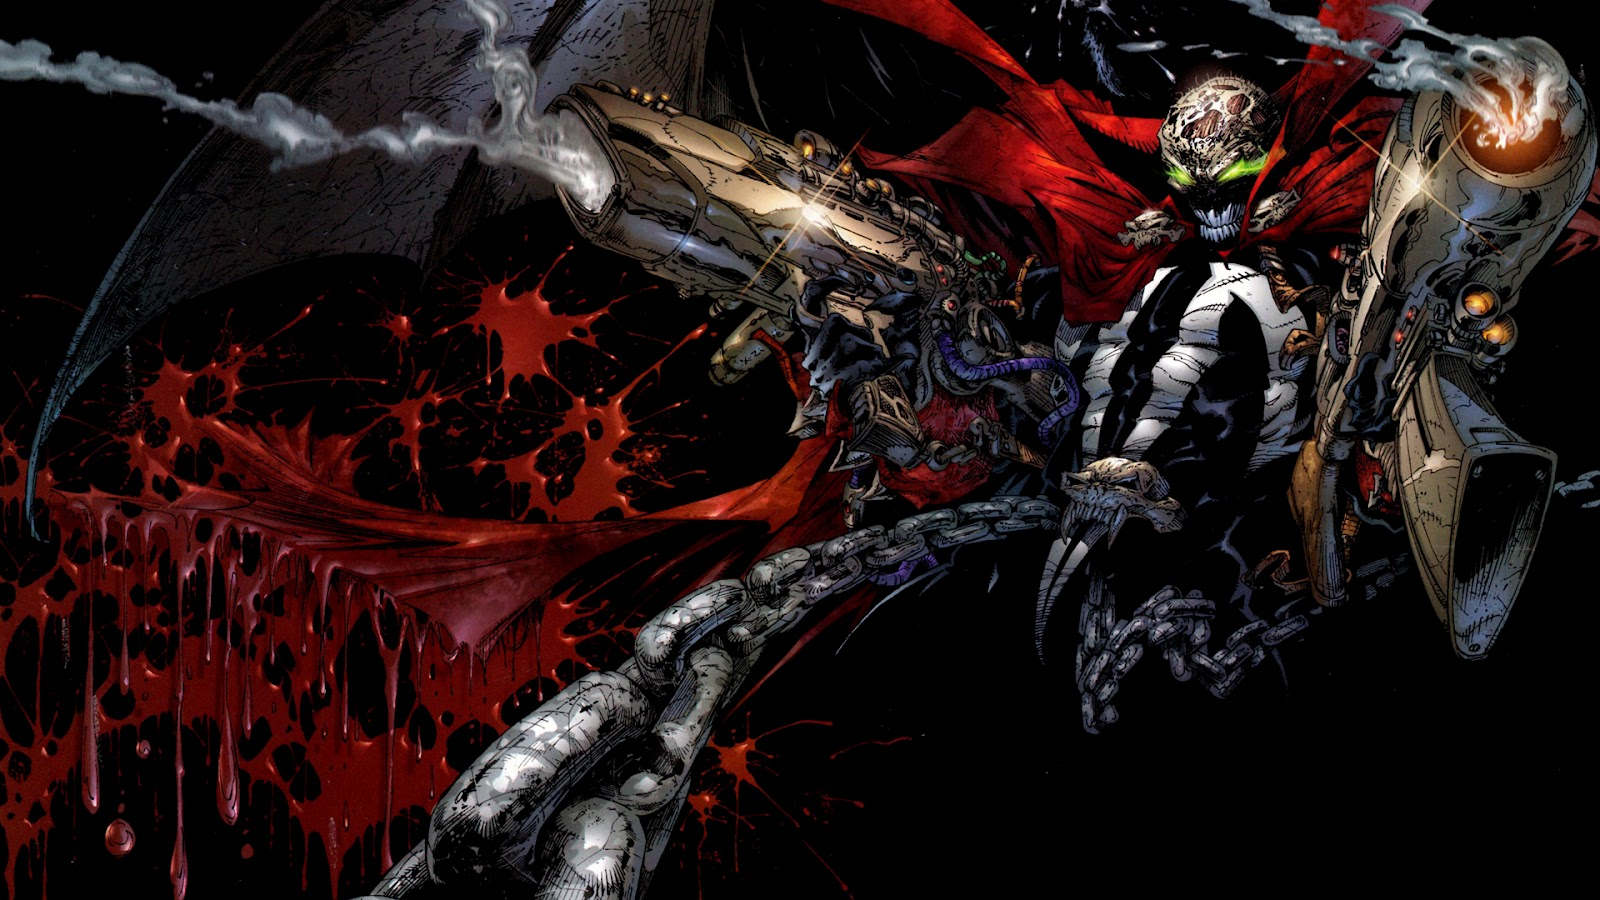 spawn wallpapers 1920x1080 - photo #6